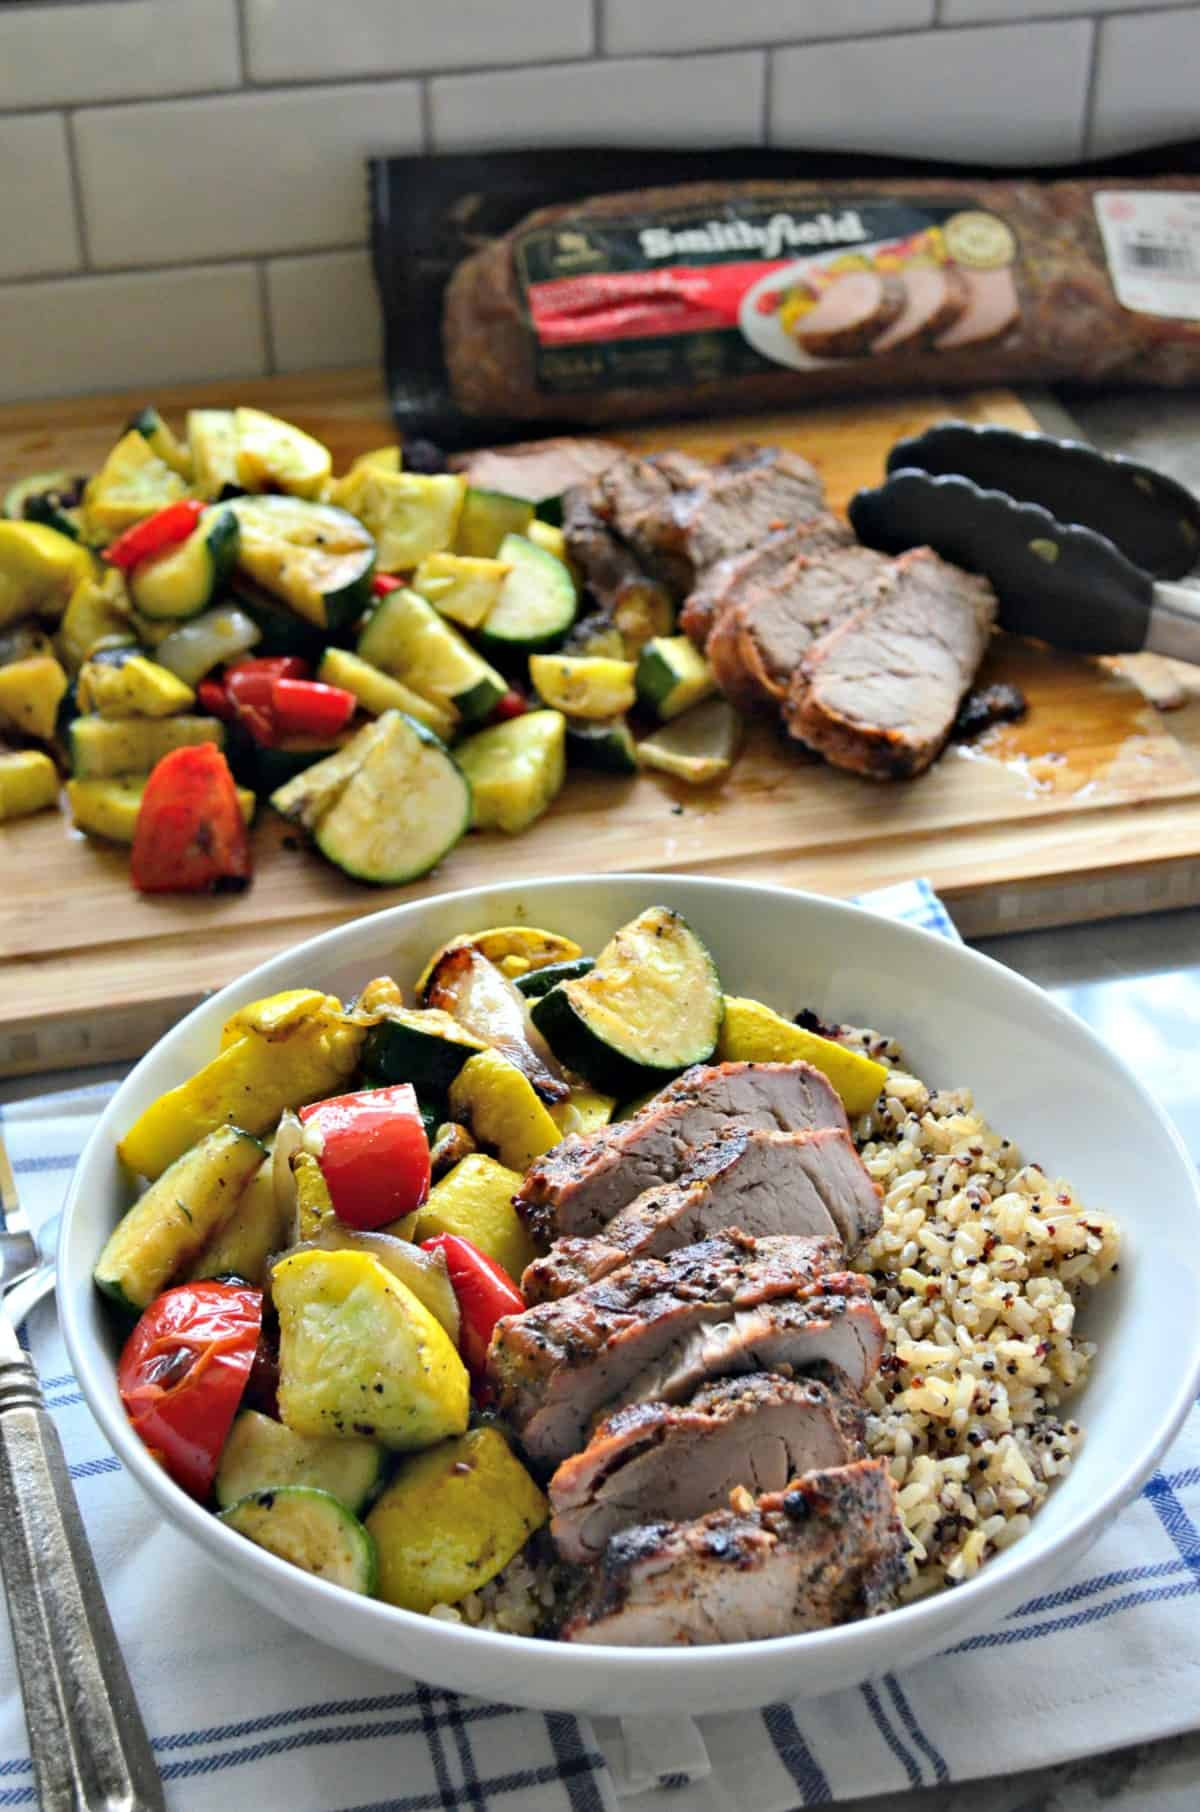 Pork Tenderloin and Brown Rice in a bowl with grilled squash, tomatoes, onions in front of cutting board.